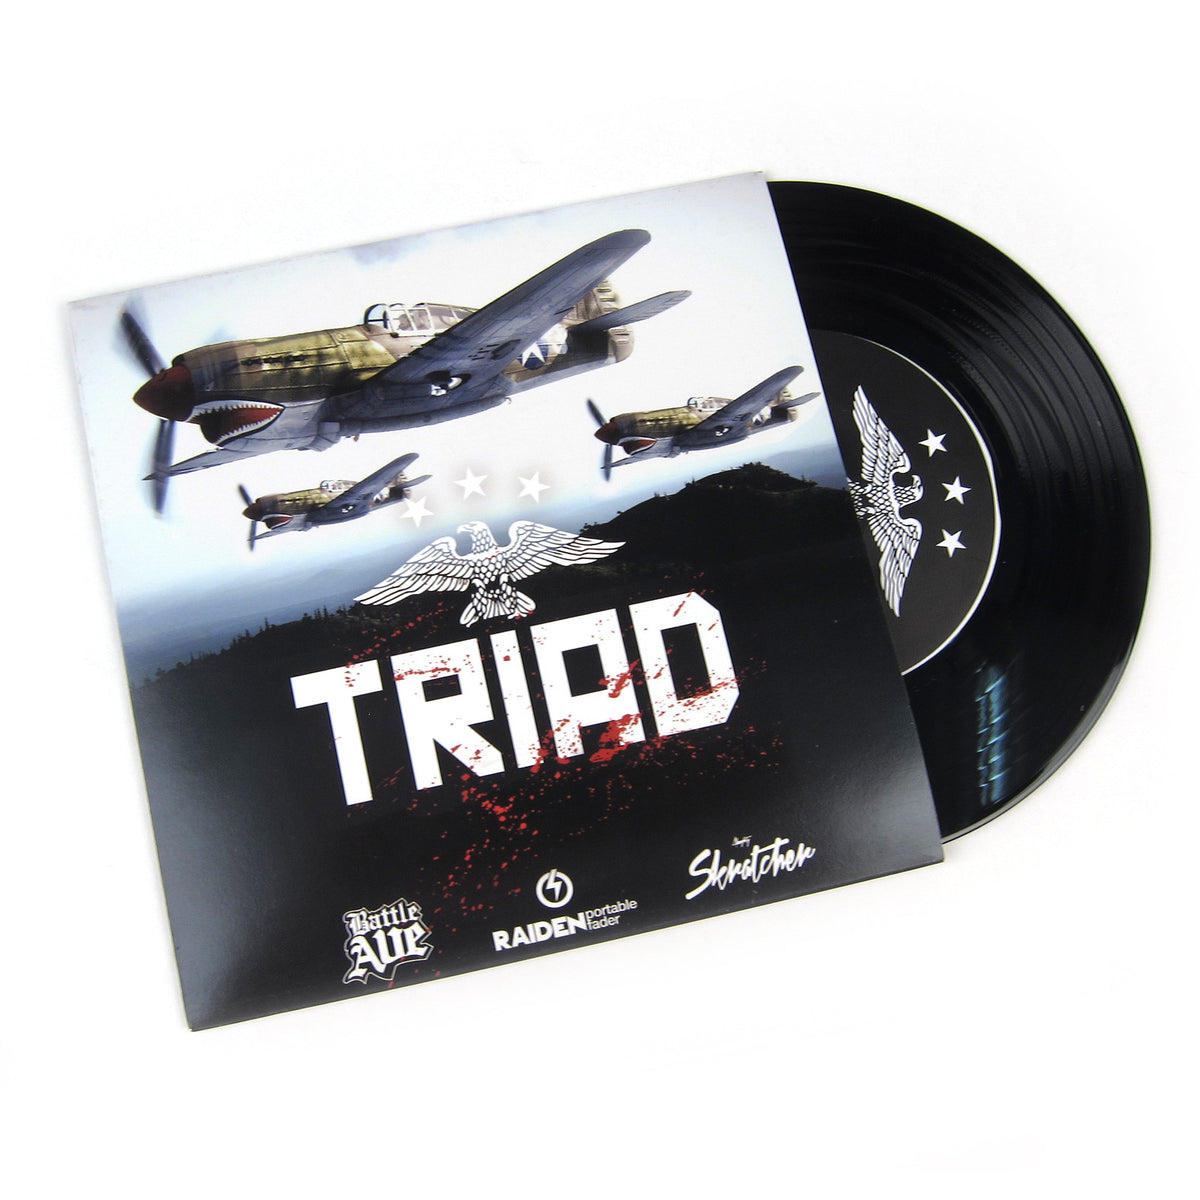 Battle Ave: Triad Breaks (Raiden Fader, Skratcher) Vinyl 7""